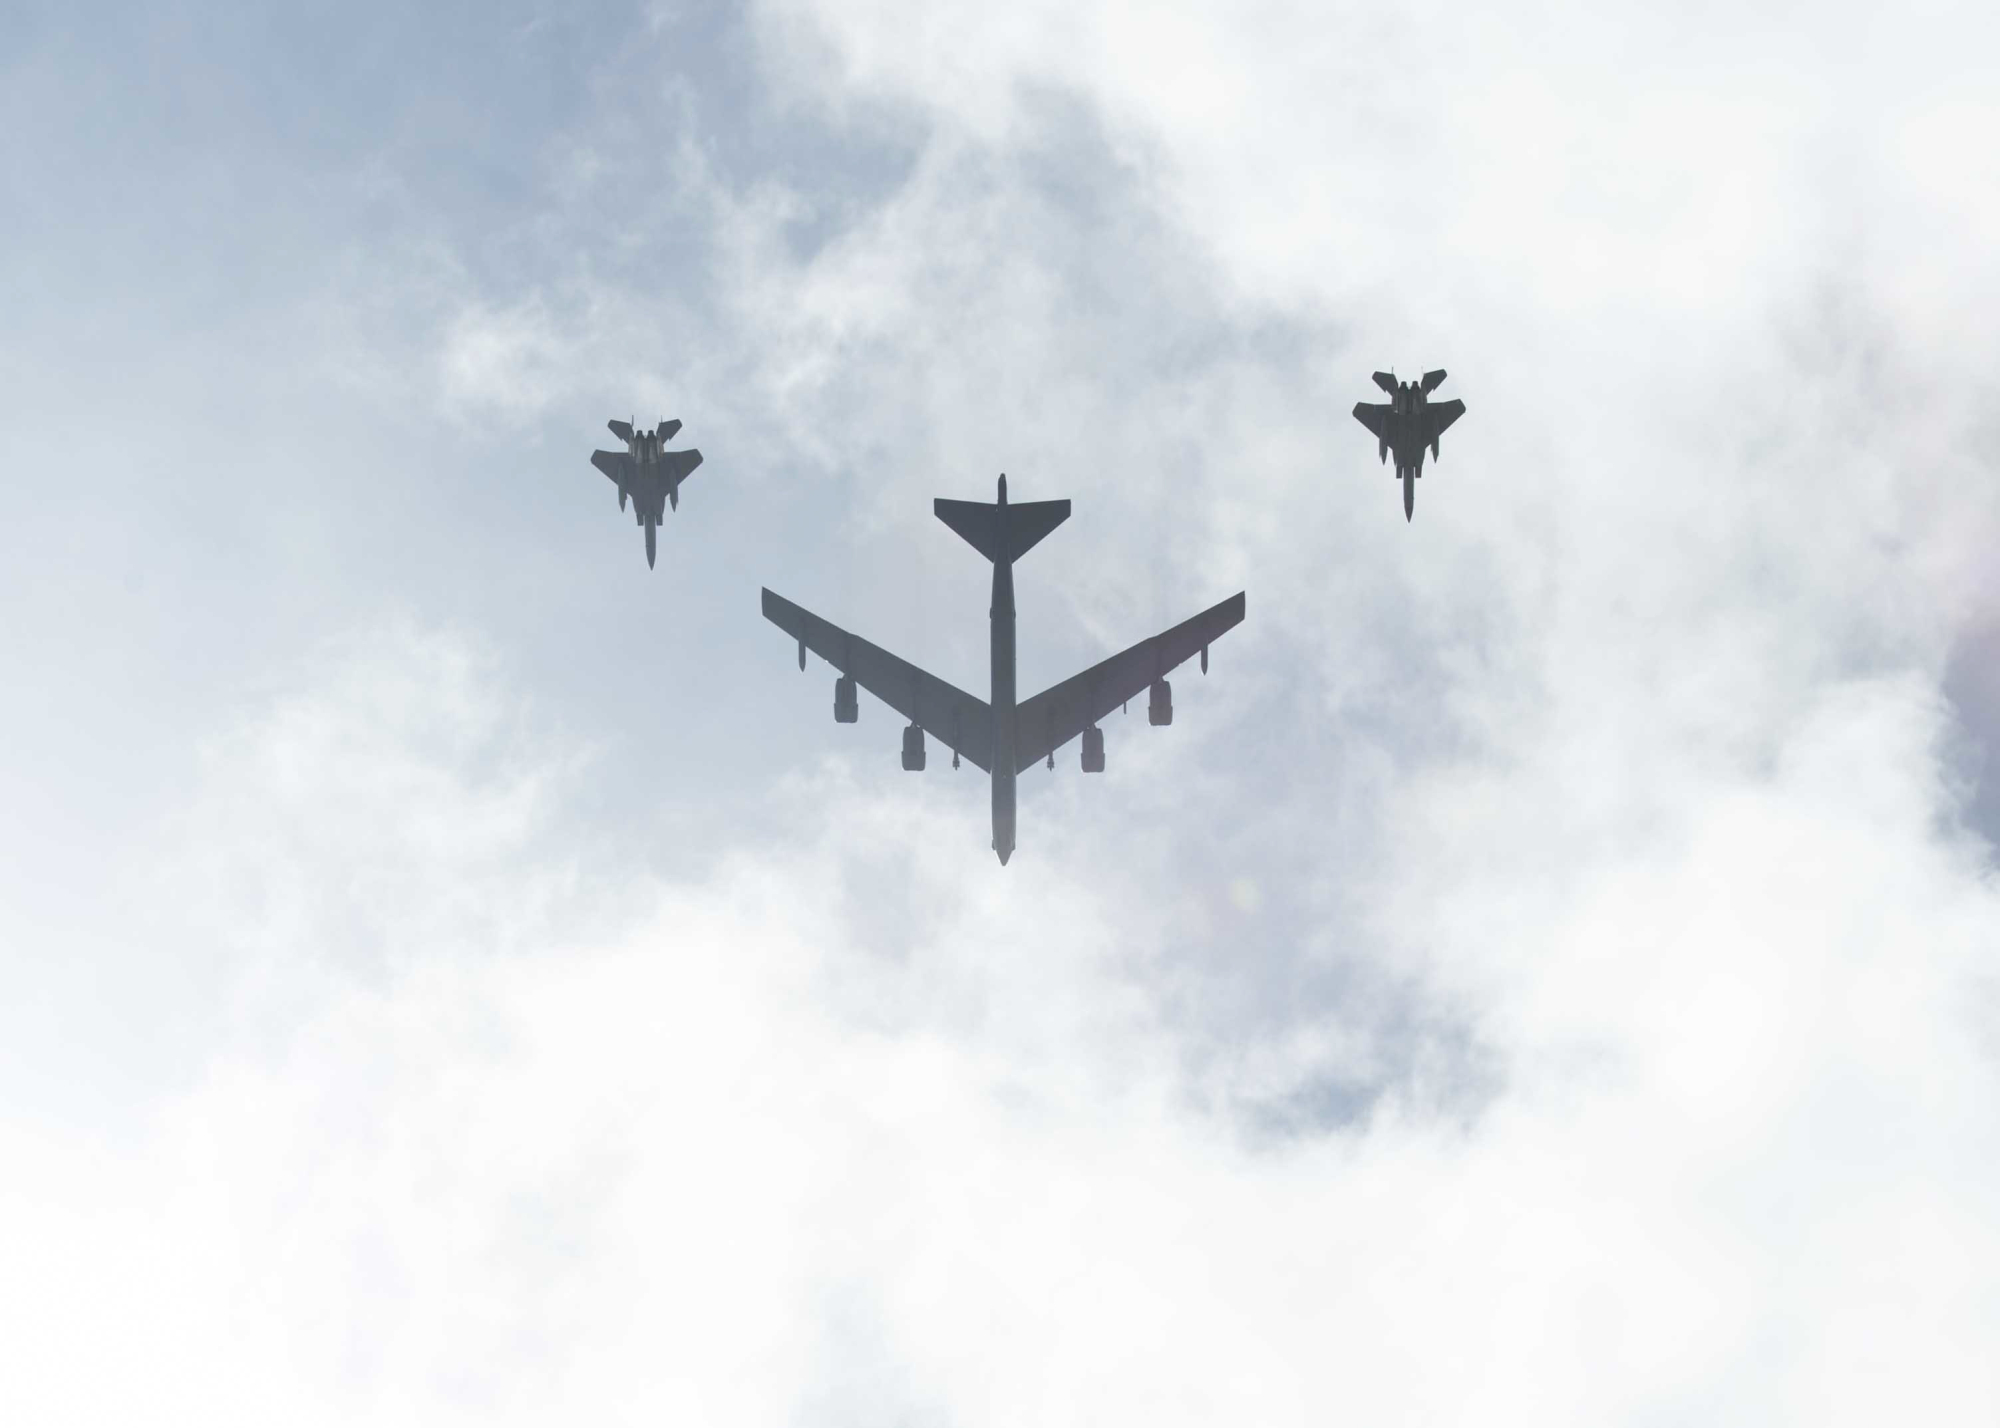 A B-52 bomber, escorted by F-15E Strike Eagle tactical ground attack aircraft, flies over the 75th Guam Liberation Day parade on July 21 in Hagatna, Guam. | U.S. NAVY